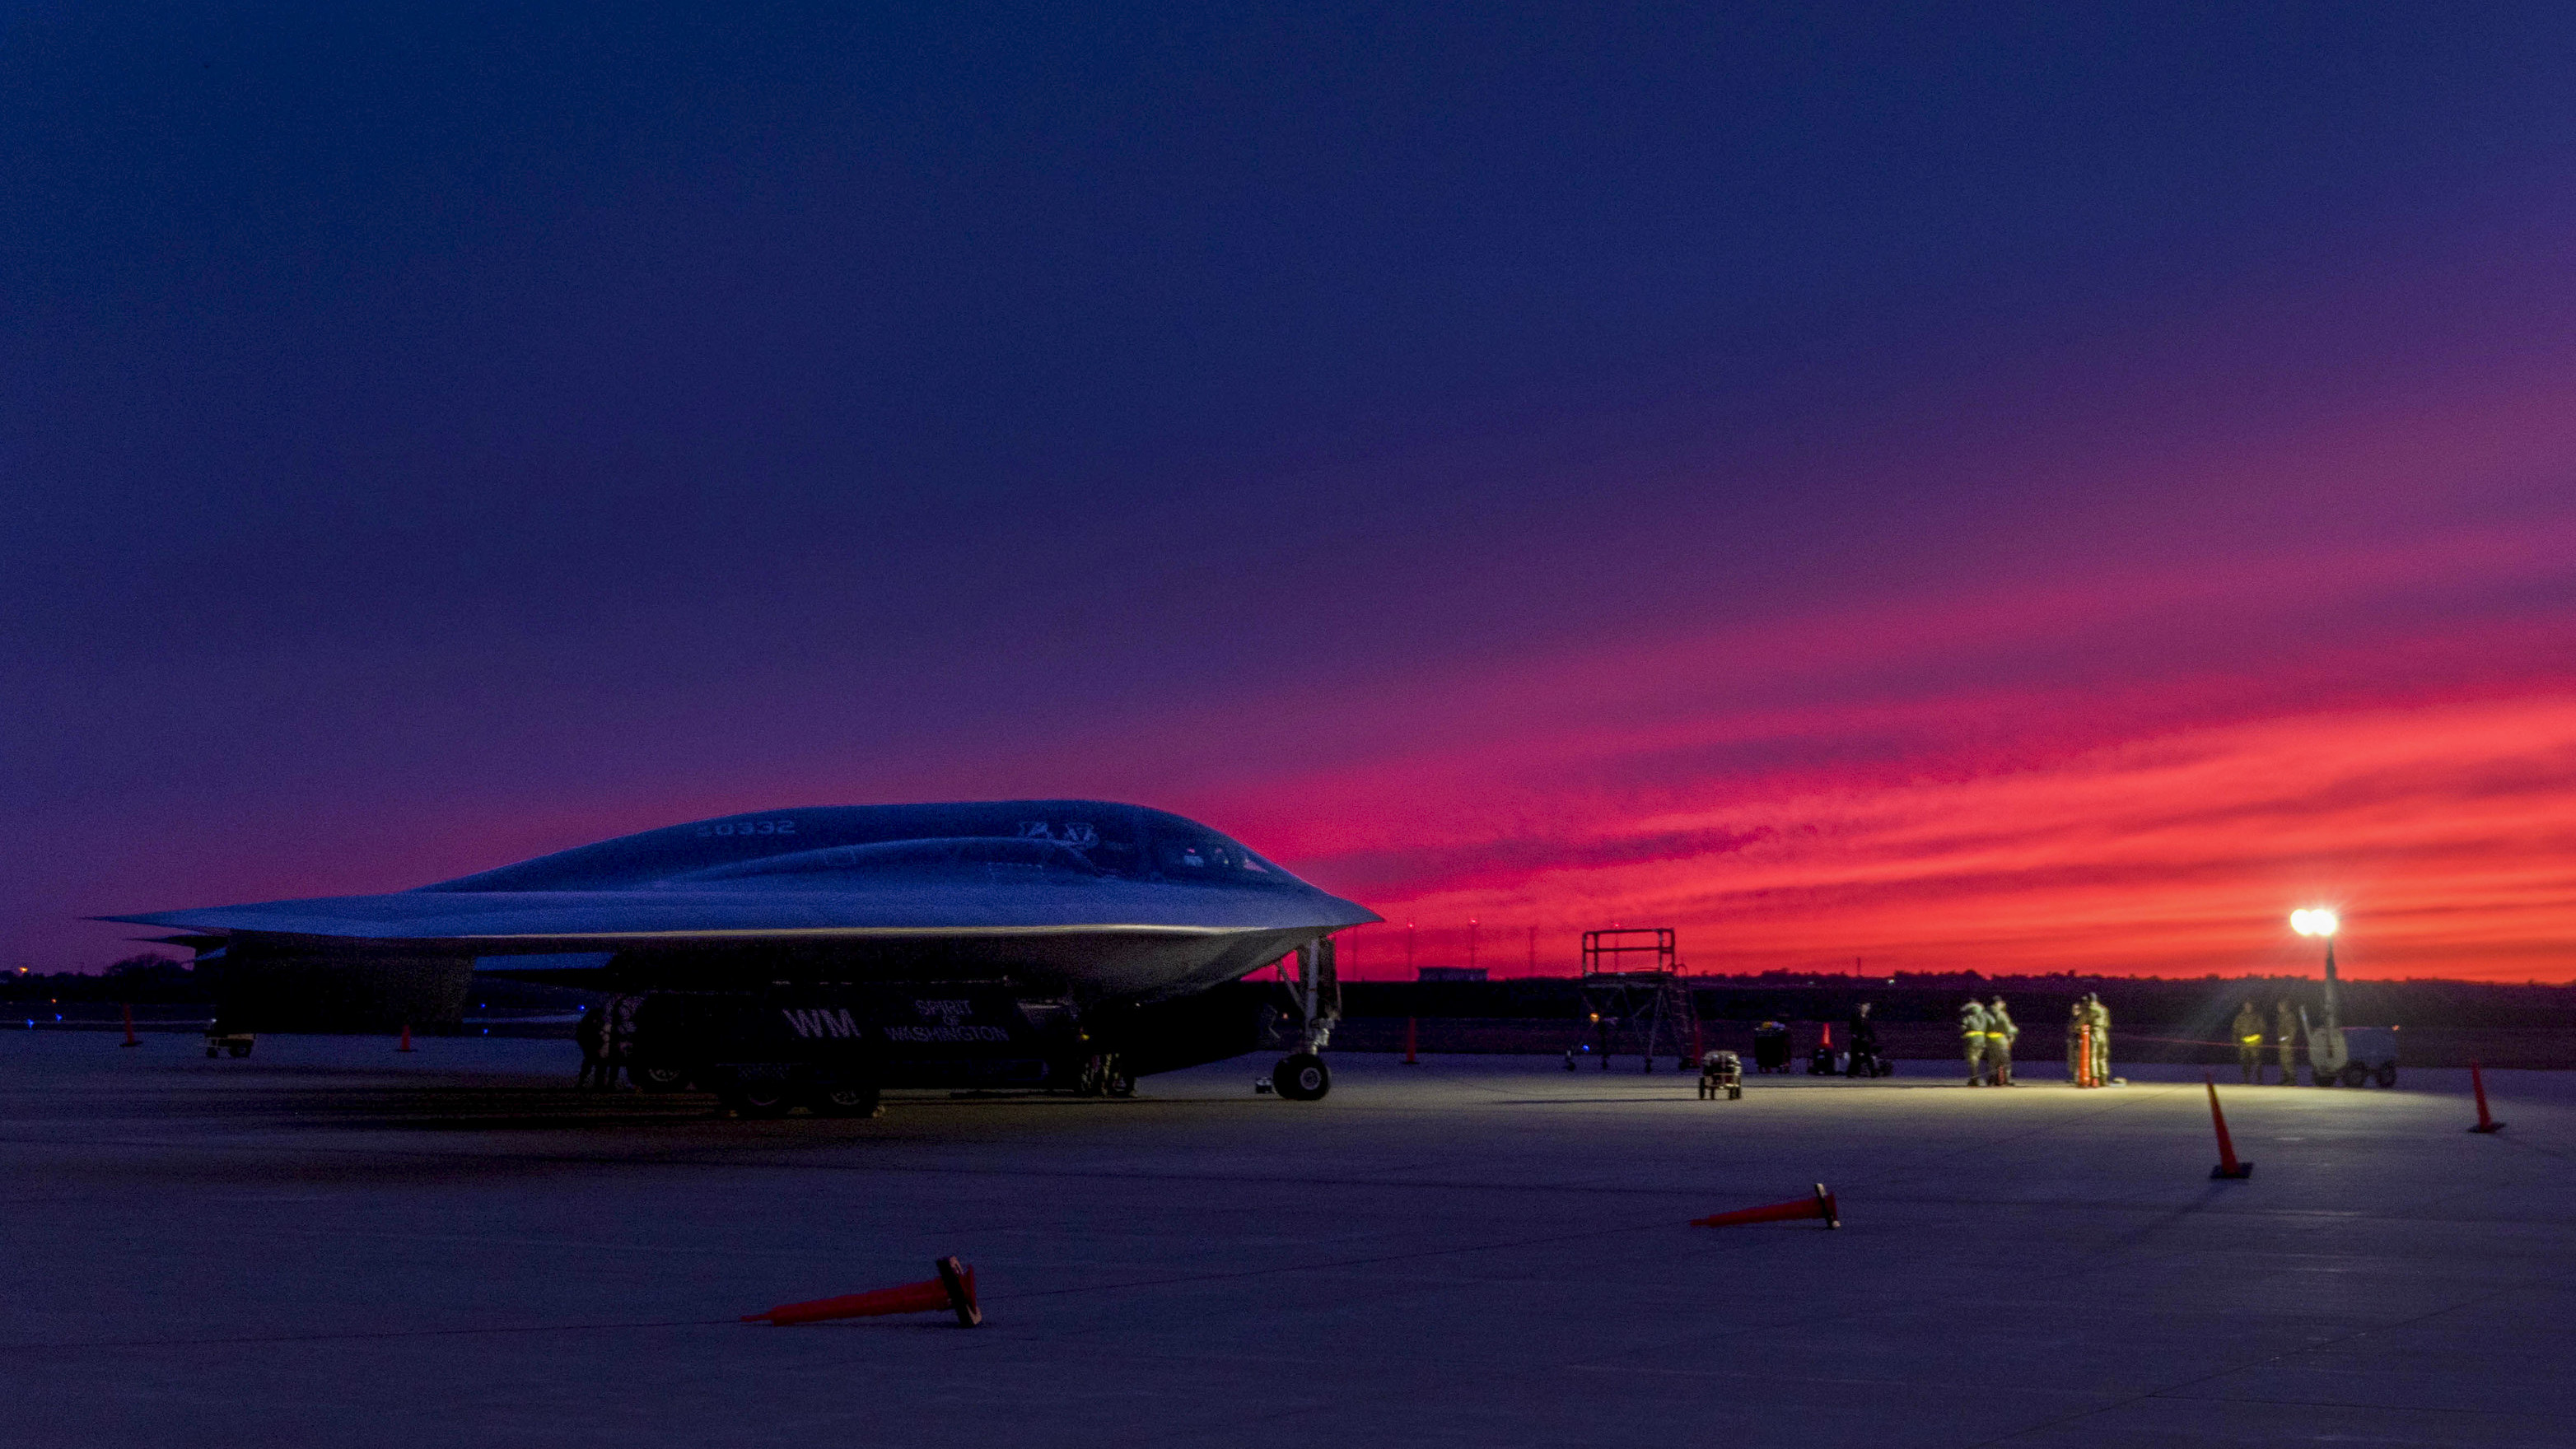 A B-2 Spirit Stealth Bomber, assigned to the 509th Bomb Wing, Whiteman Air Force Base, Missouri, sits on the flight line, Oct 24, 2019. Consistent training and exercising validates the B-2Õs ability to respond to challenges all over the globe. (Sr. Airman Thomas Barley/Air Force)